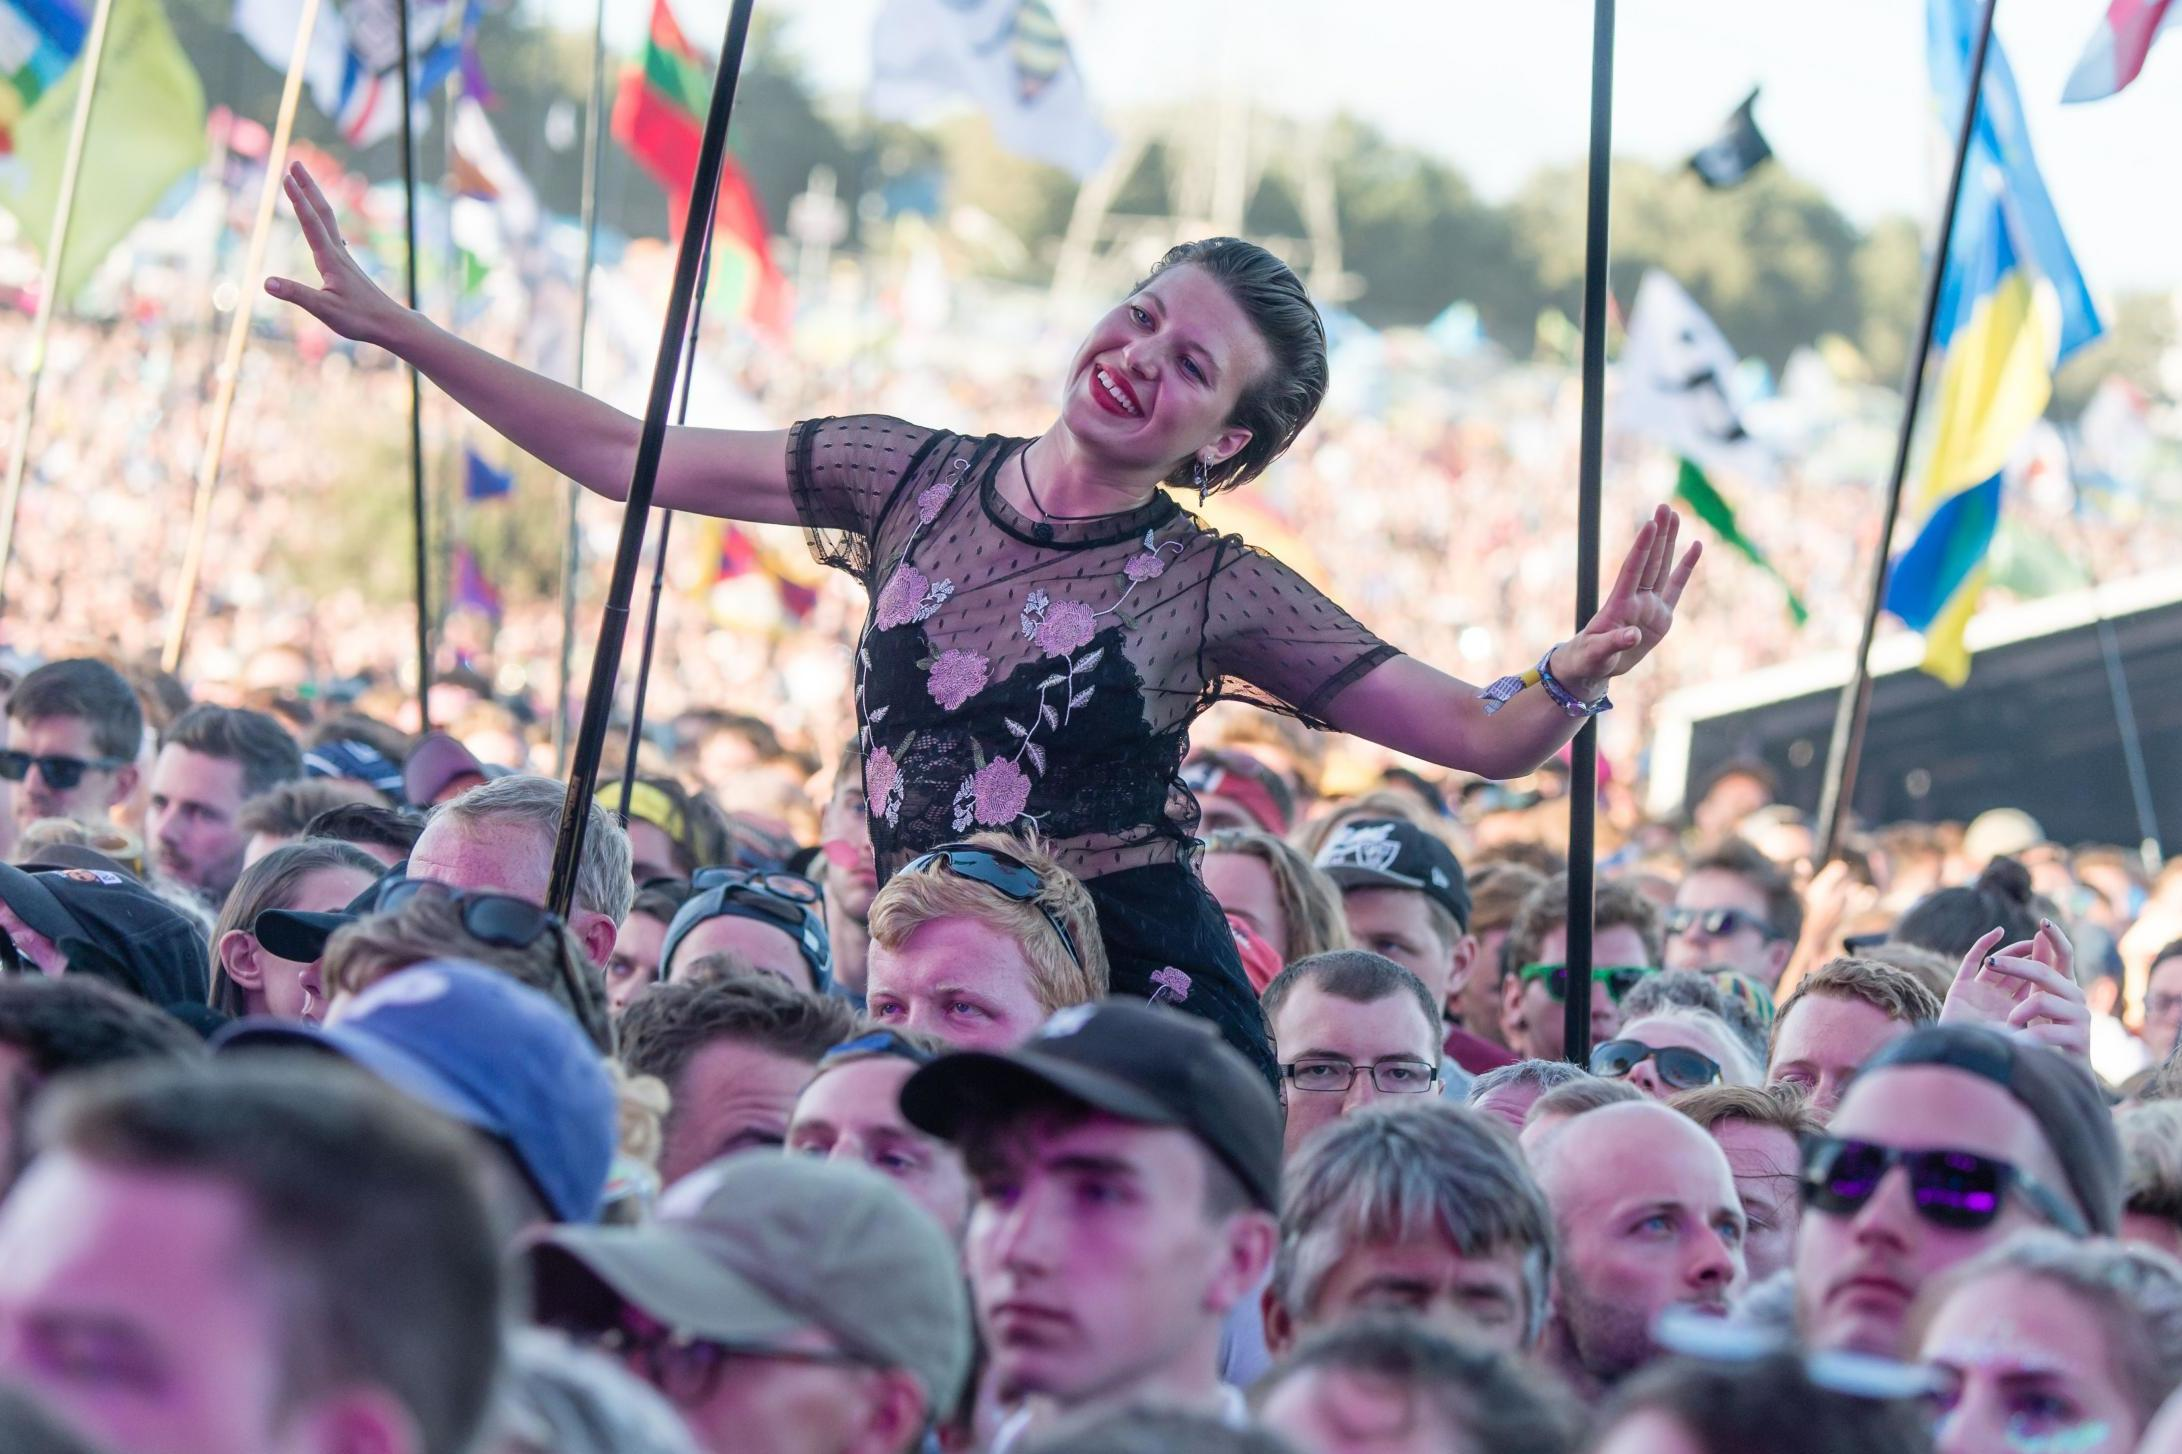 6 ways to be sustainable this festival season